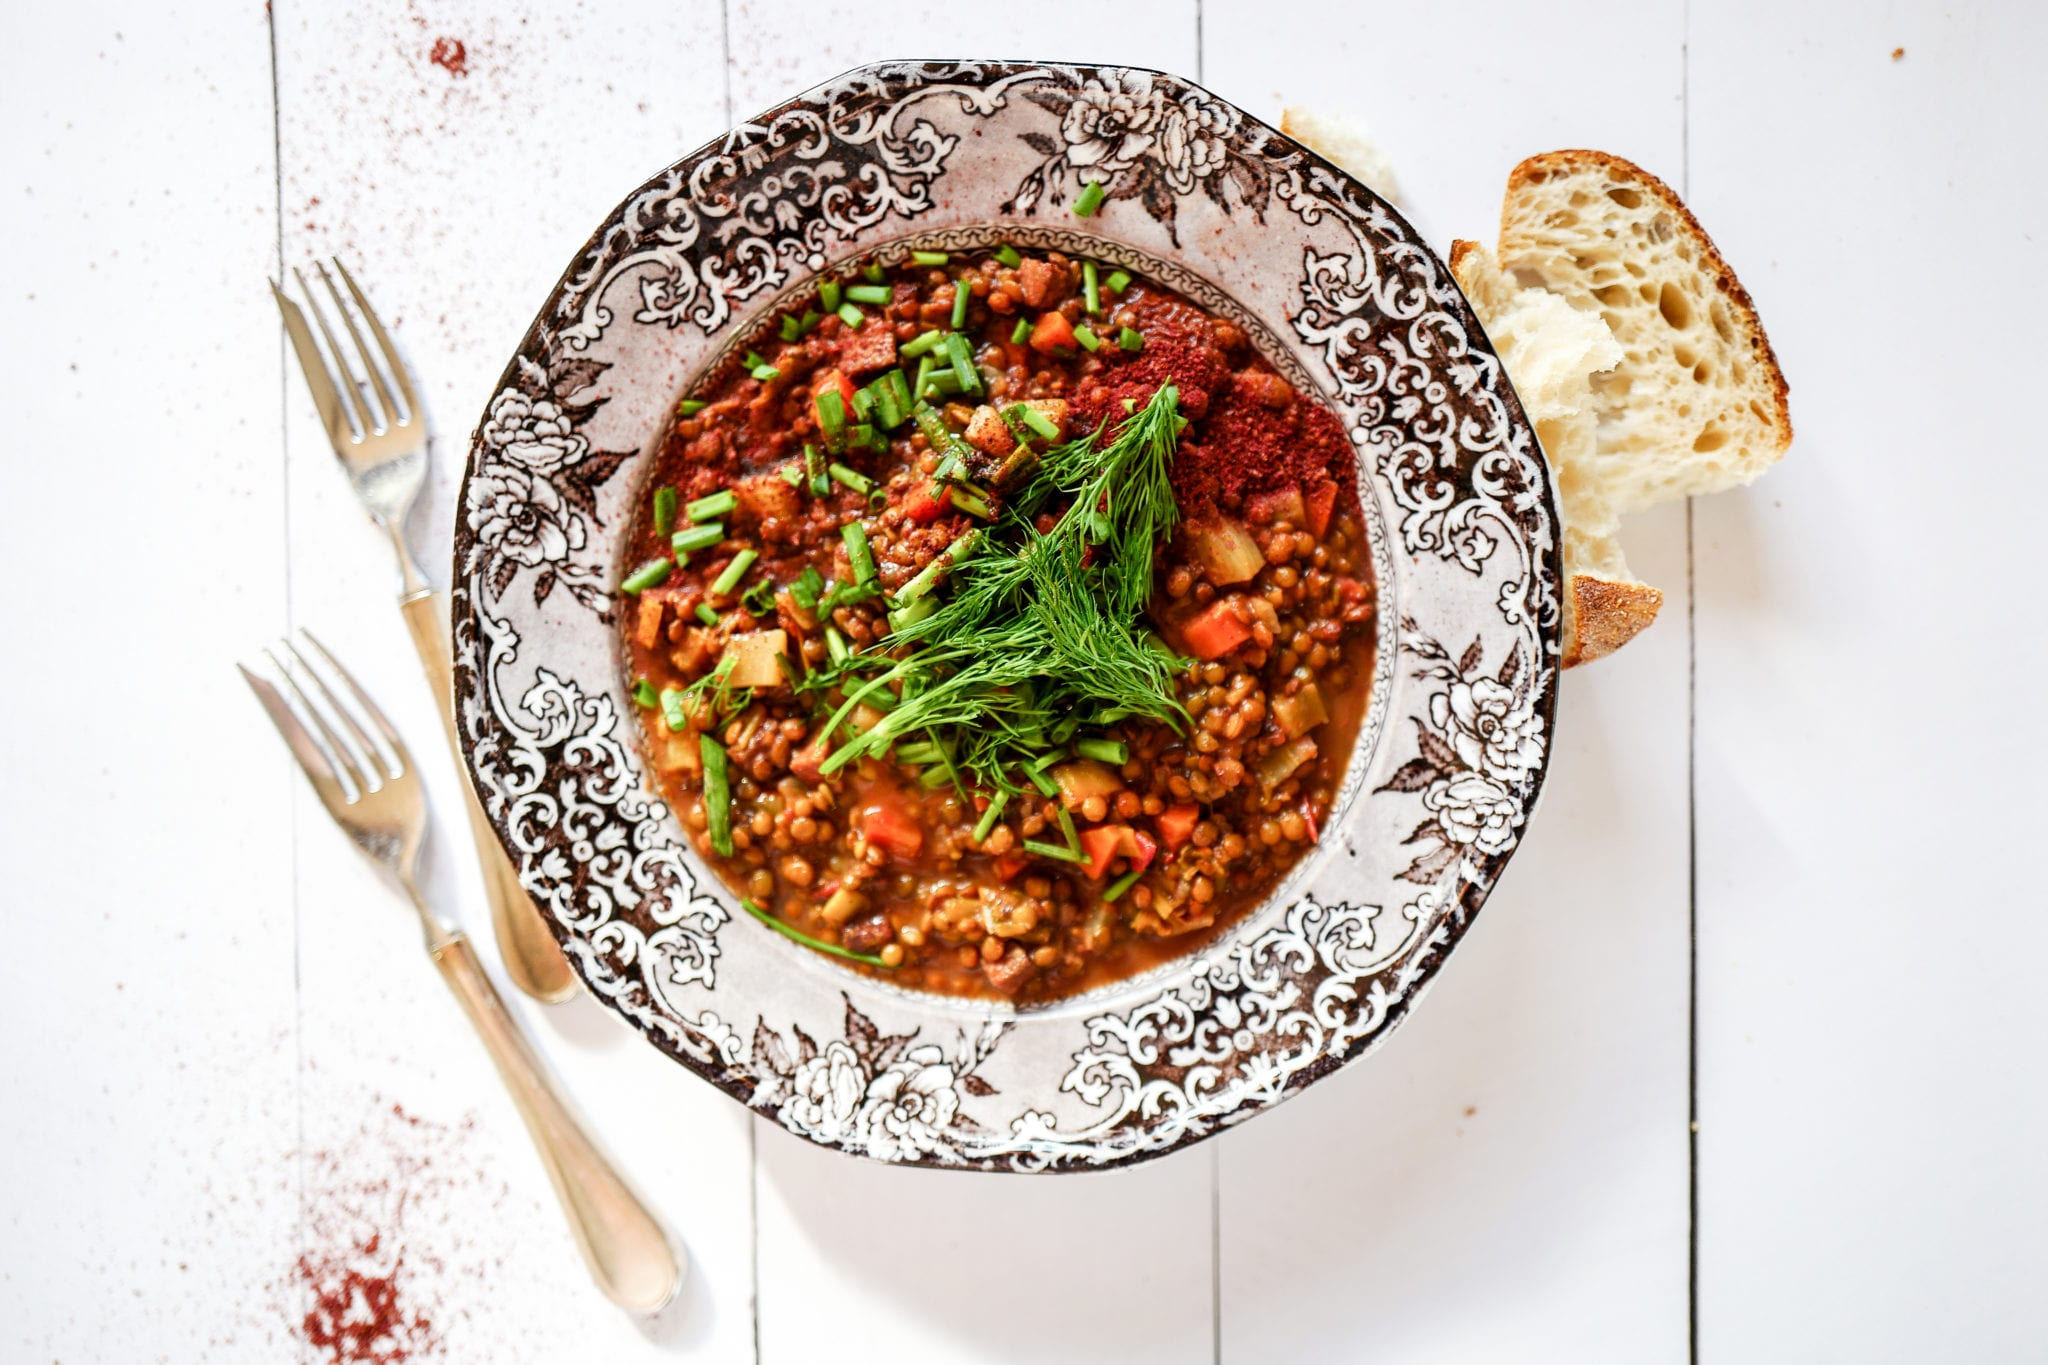 Making Home: Lentil & Sausage Stew